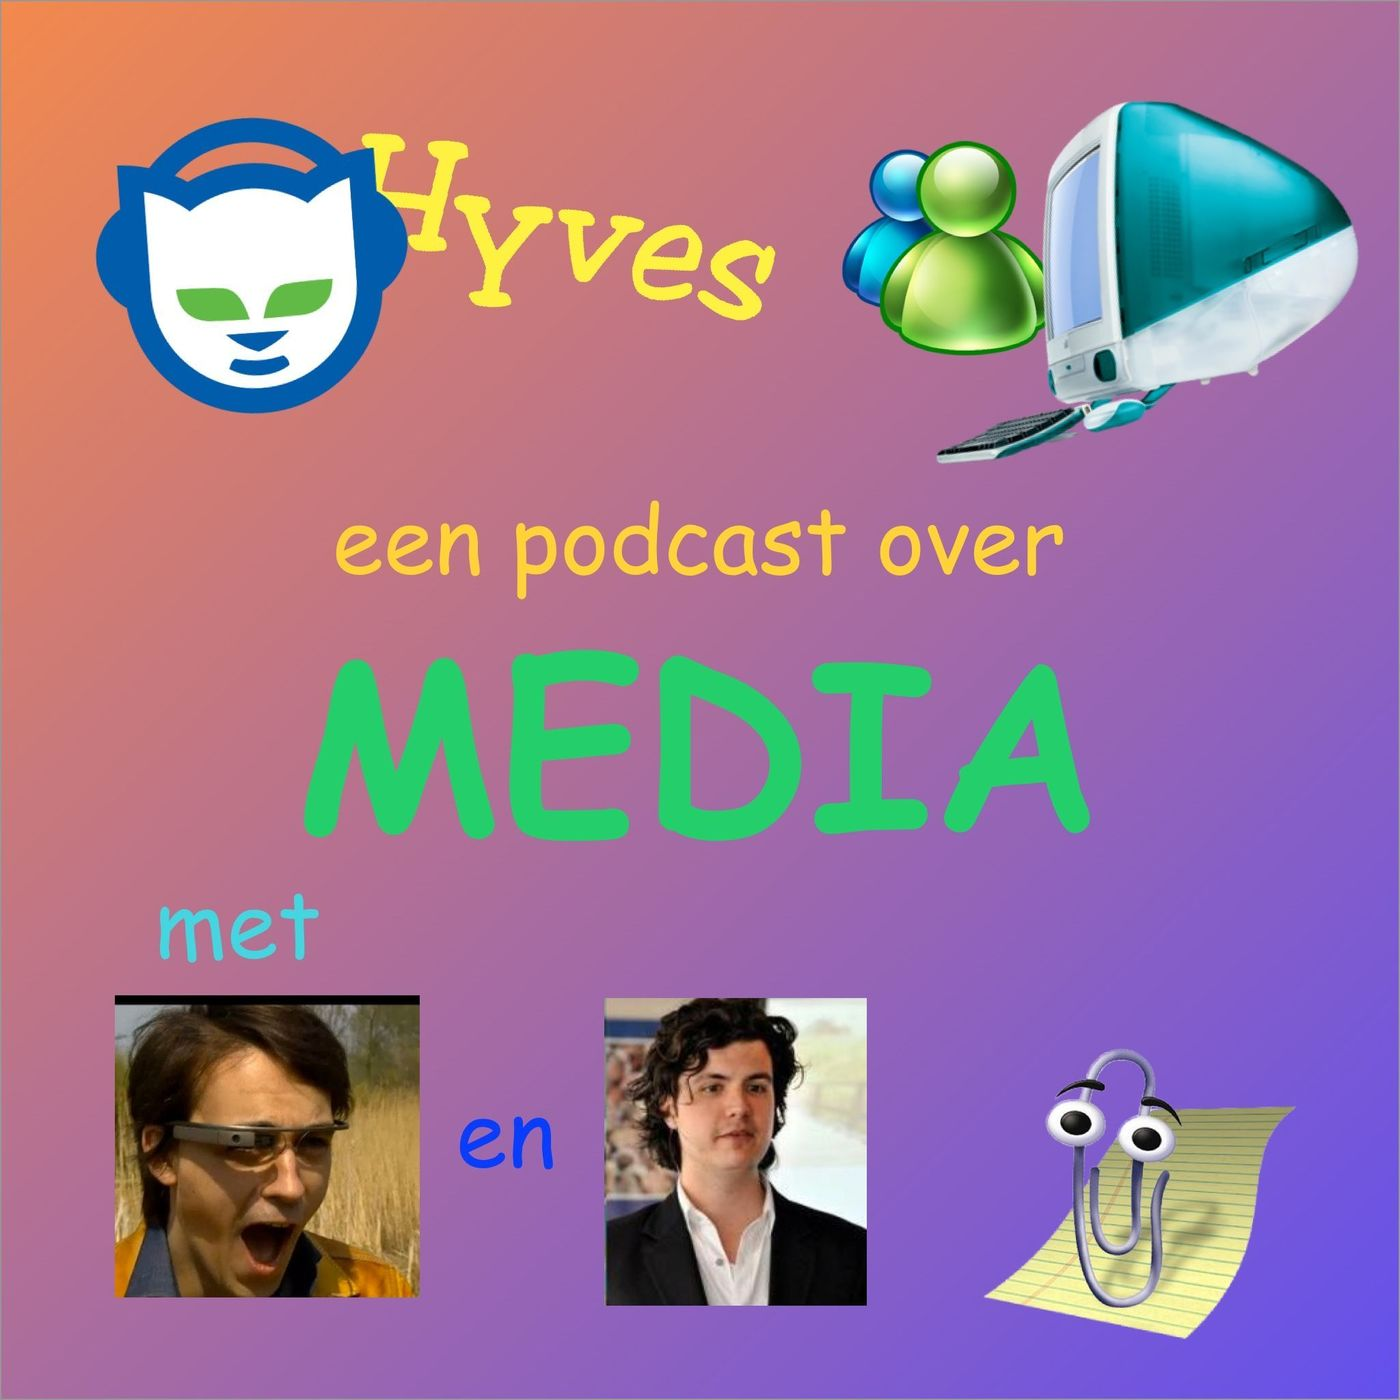 S02E11 - Een superluchtige aflevering over safespaces en asociale nerds